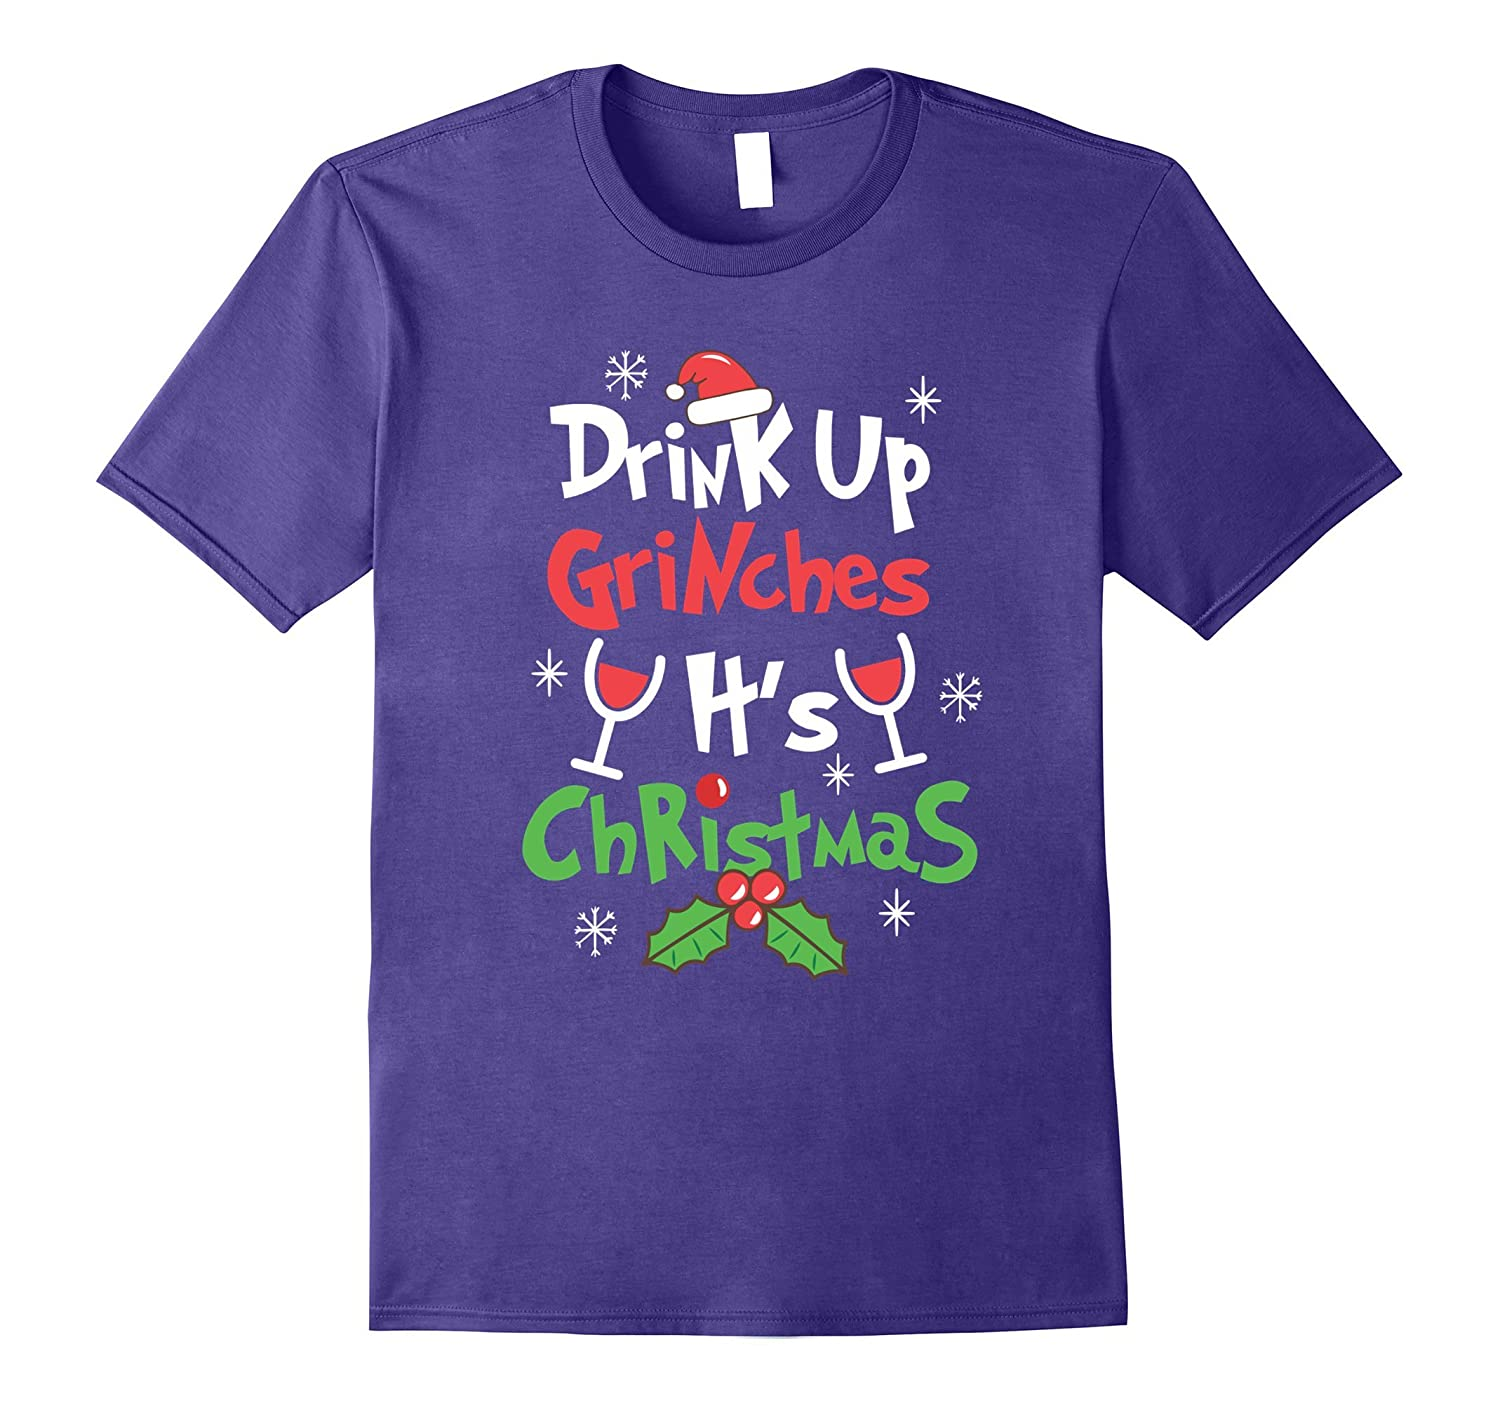 Funny Christmas Shirt - Drink Up Grinches t shirts-FL